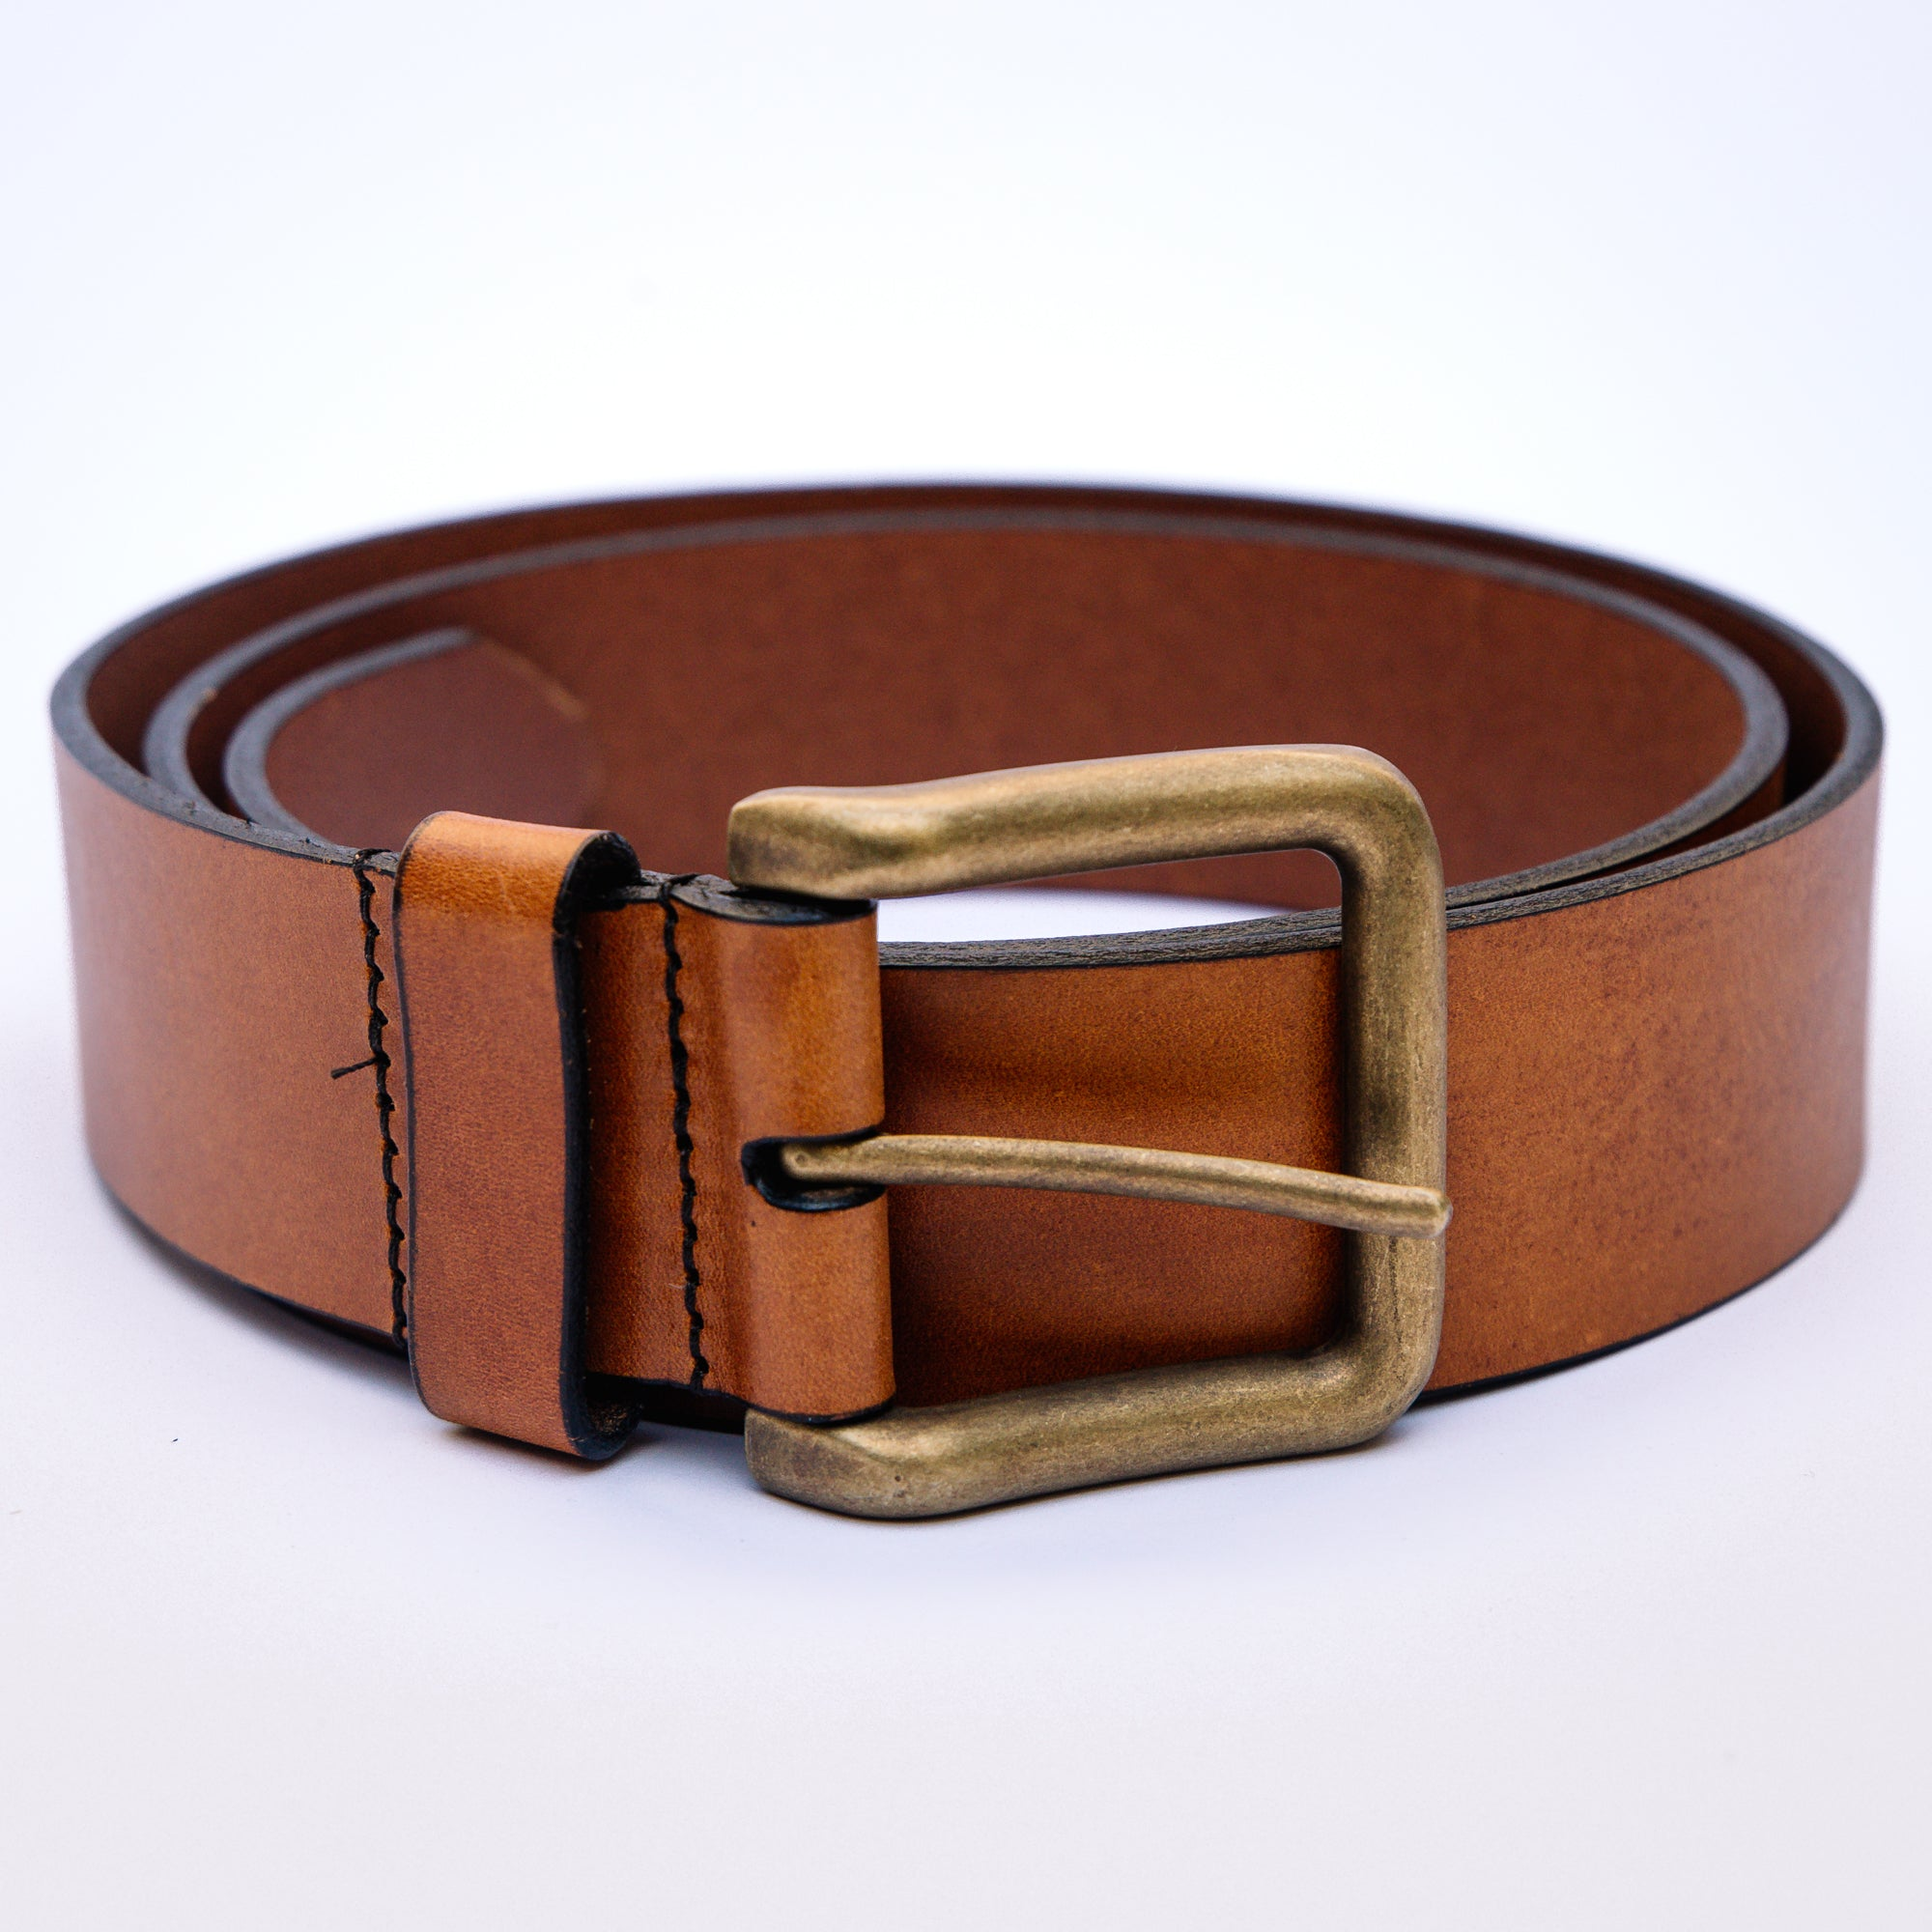 Load image into Gallery viewer, Helm Boots belt- Brass Buckle